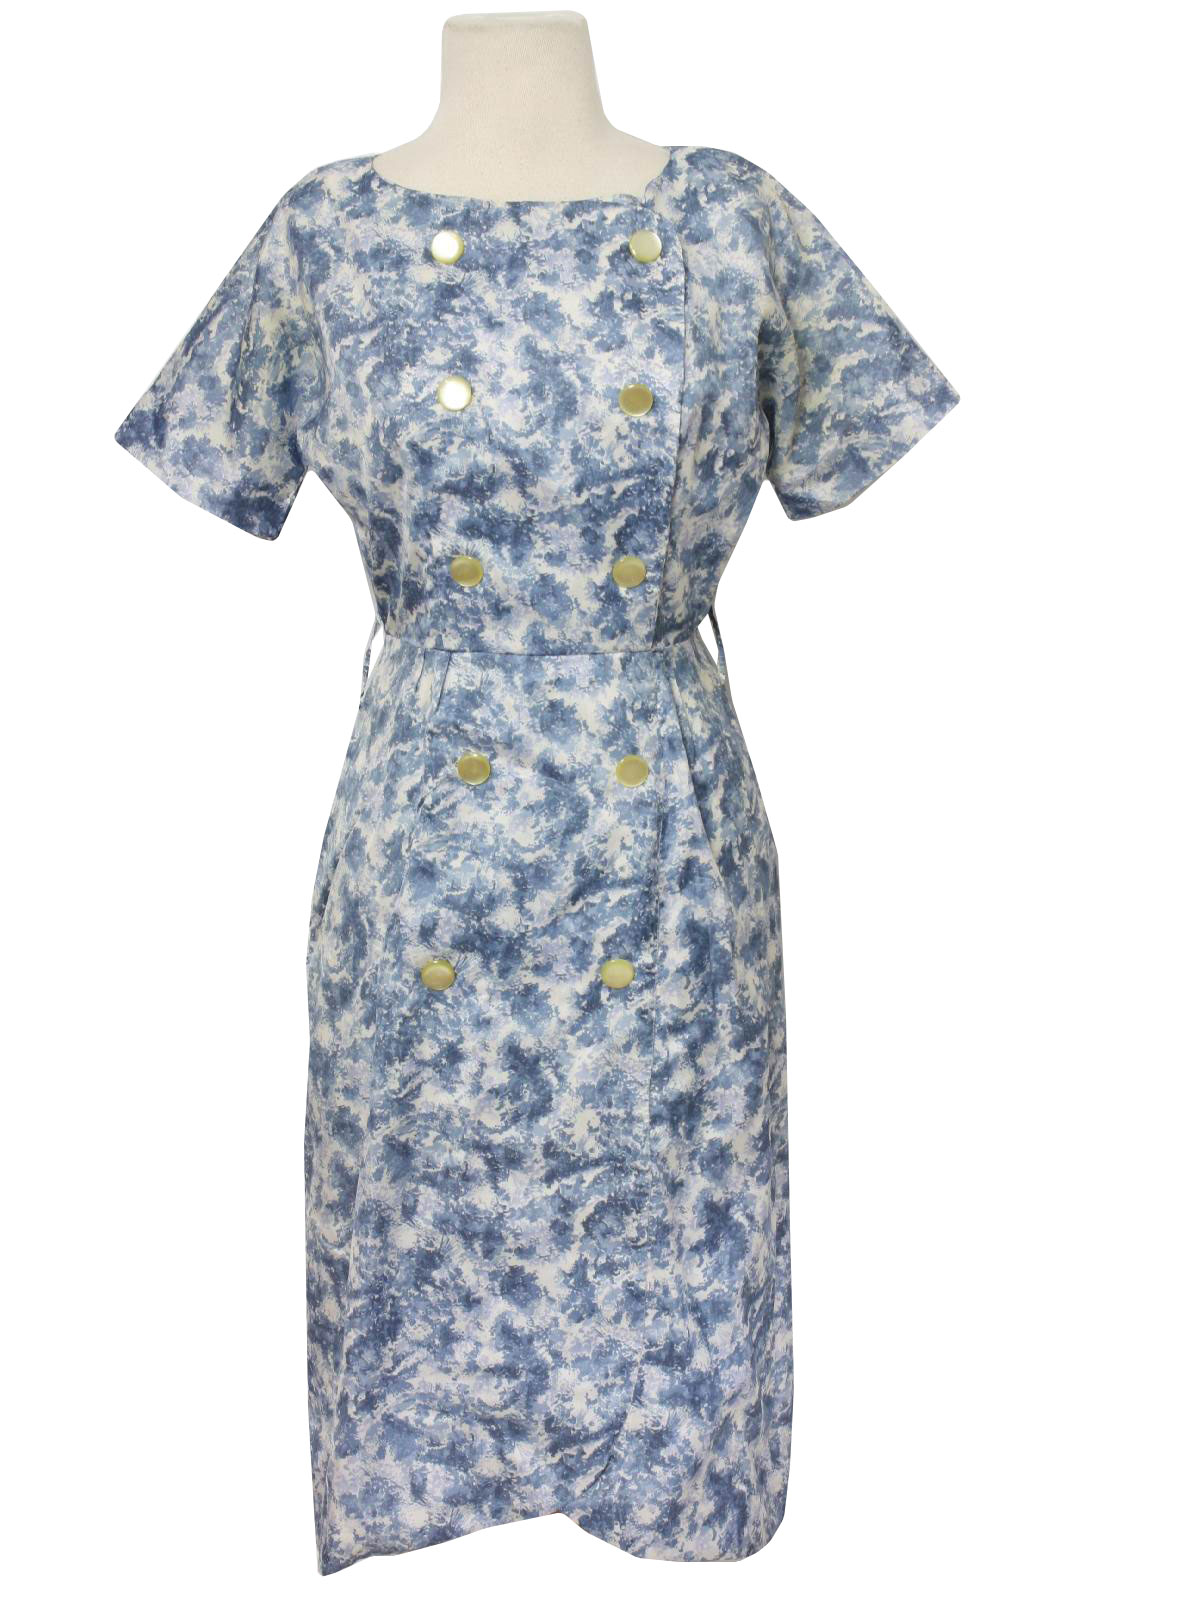 Retro 1950s Dress 50s Missing Label Likely Home Sewn